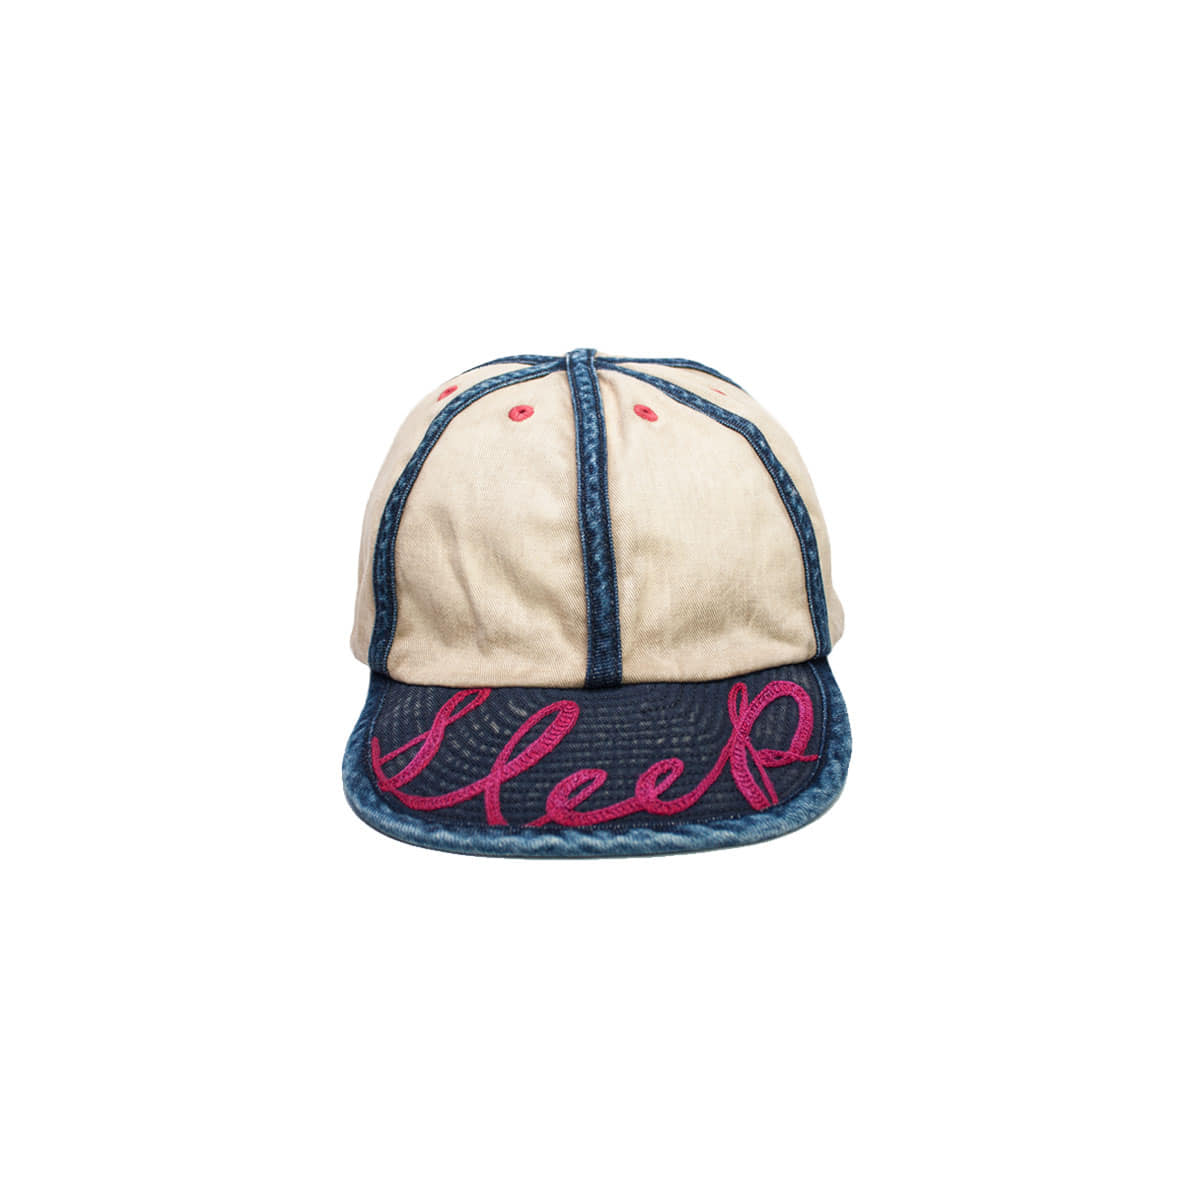 [KAPITAL] SLEKI x 8OZ DENIM KOLA CAP (SLEEP EMBROIDERY) 'NATURAL'